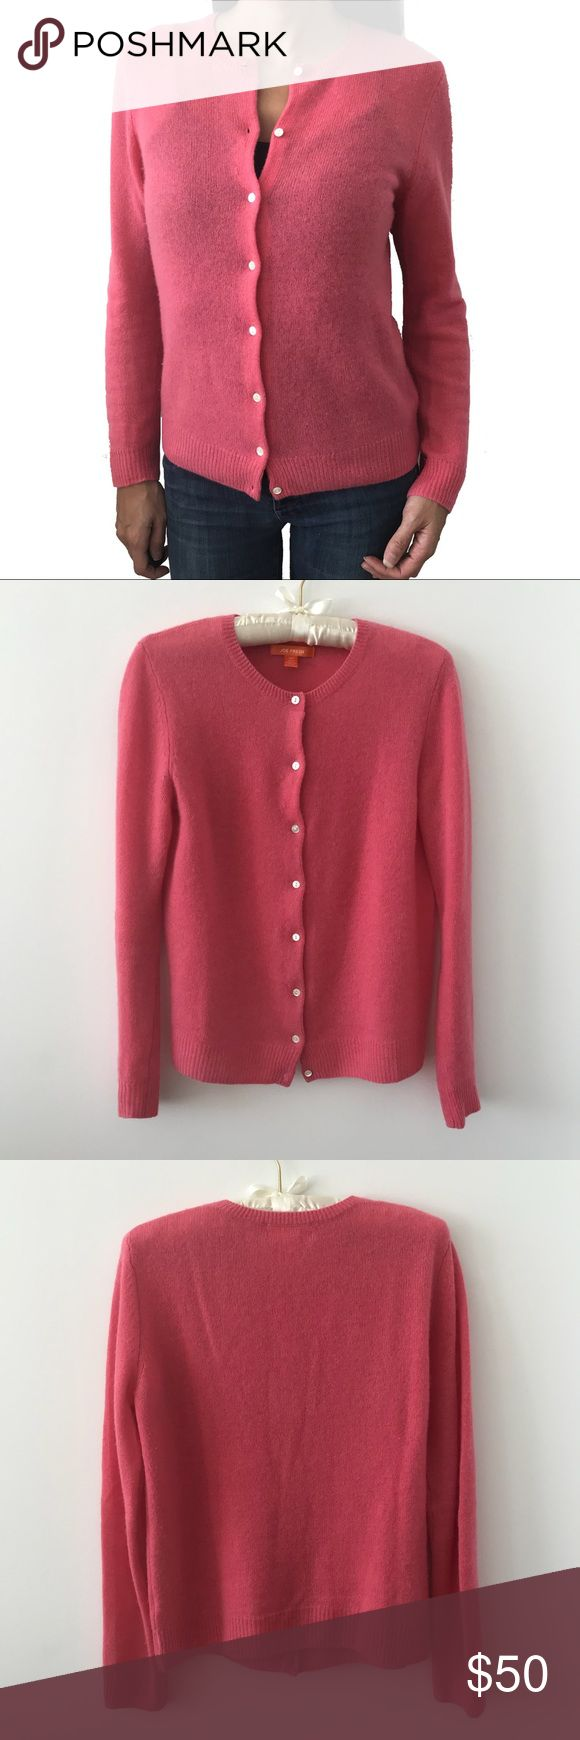 """Joe Fresh 100% Cashmere Crewneck Pink Cardigan So soft and luxurious. 100% Cashmere crewneck cardigan by Joe Fresh. In an adorable baby pink with pearl-white colored buttons.   Size S.  18"""" pit to pit (laying flat).  22"""" length.   Well-cared for item in excellent condition. Joe Fresh Sweaters Cardigans"""